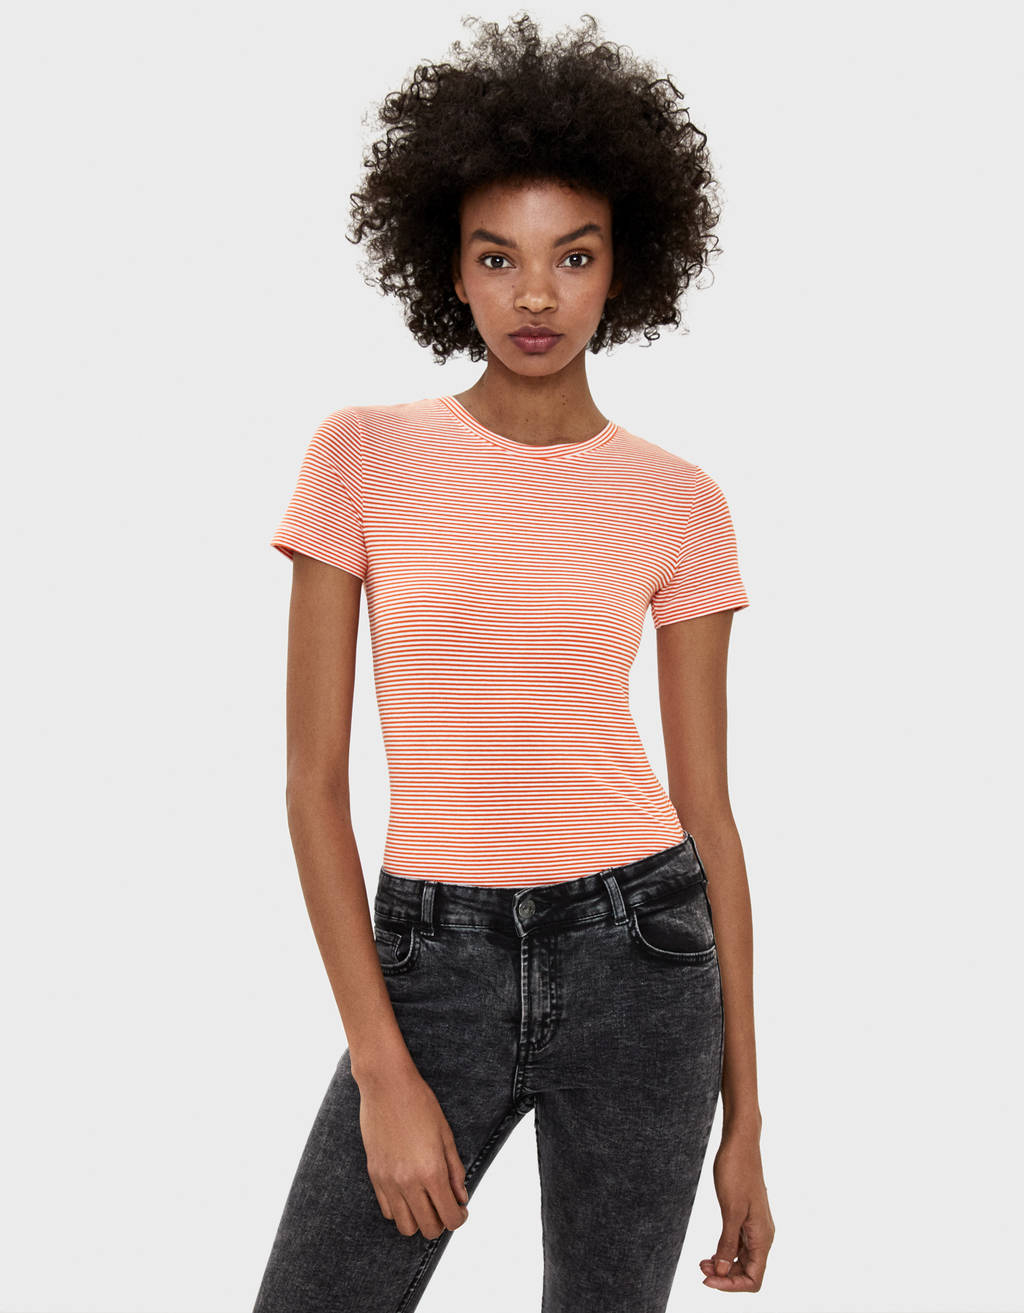 Womens T Shirts Fall 2019 Bershka